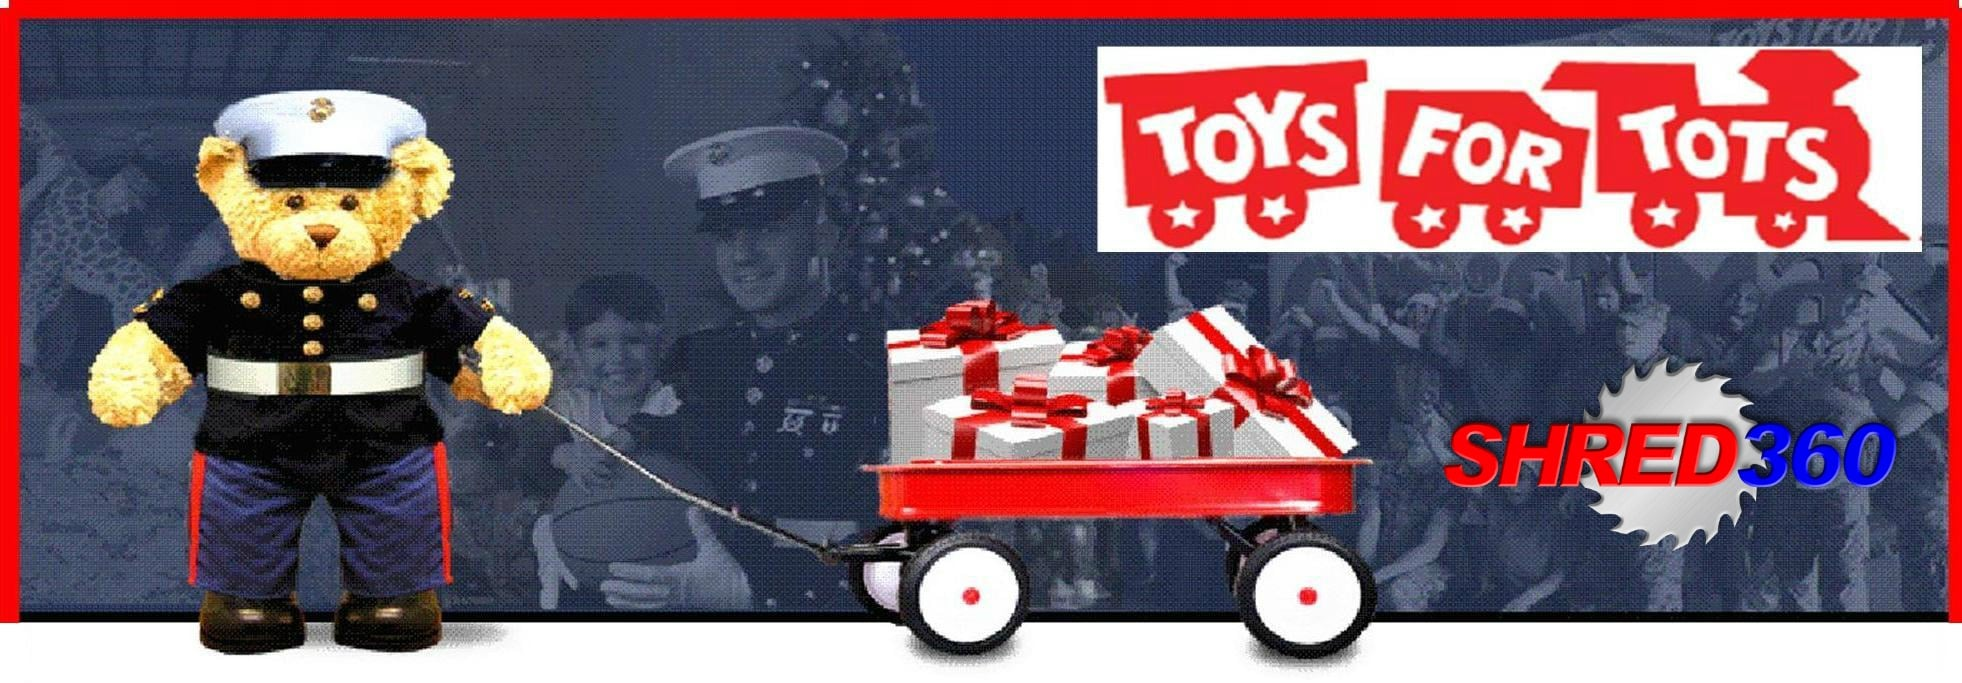 toys-for-tots-cover-header-photo